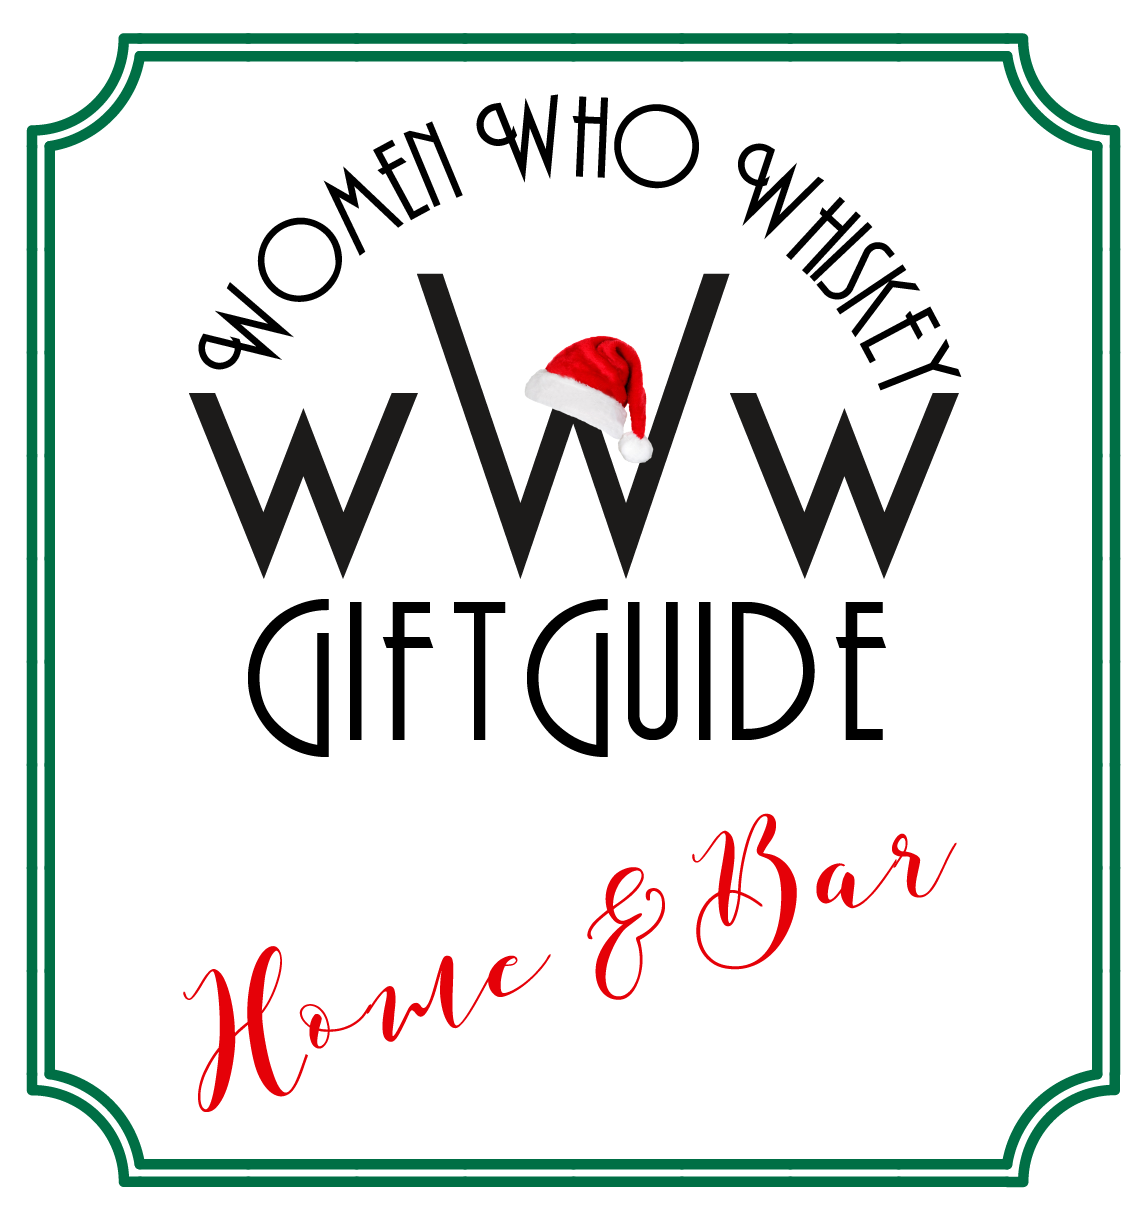 Gift Guide-Apparel&Accessorie.png